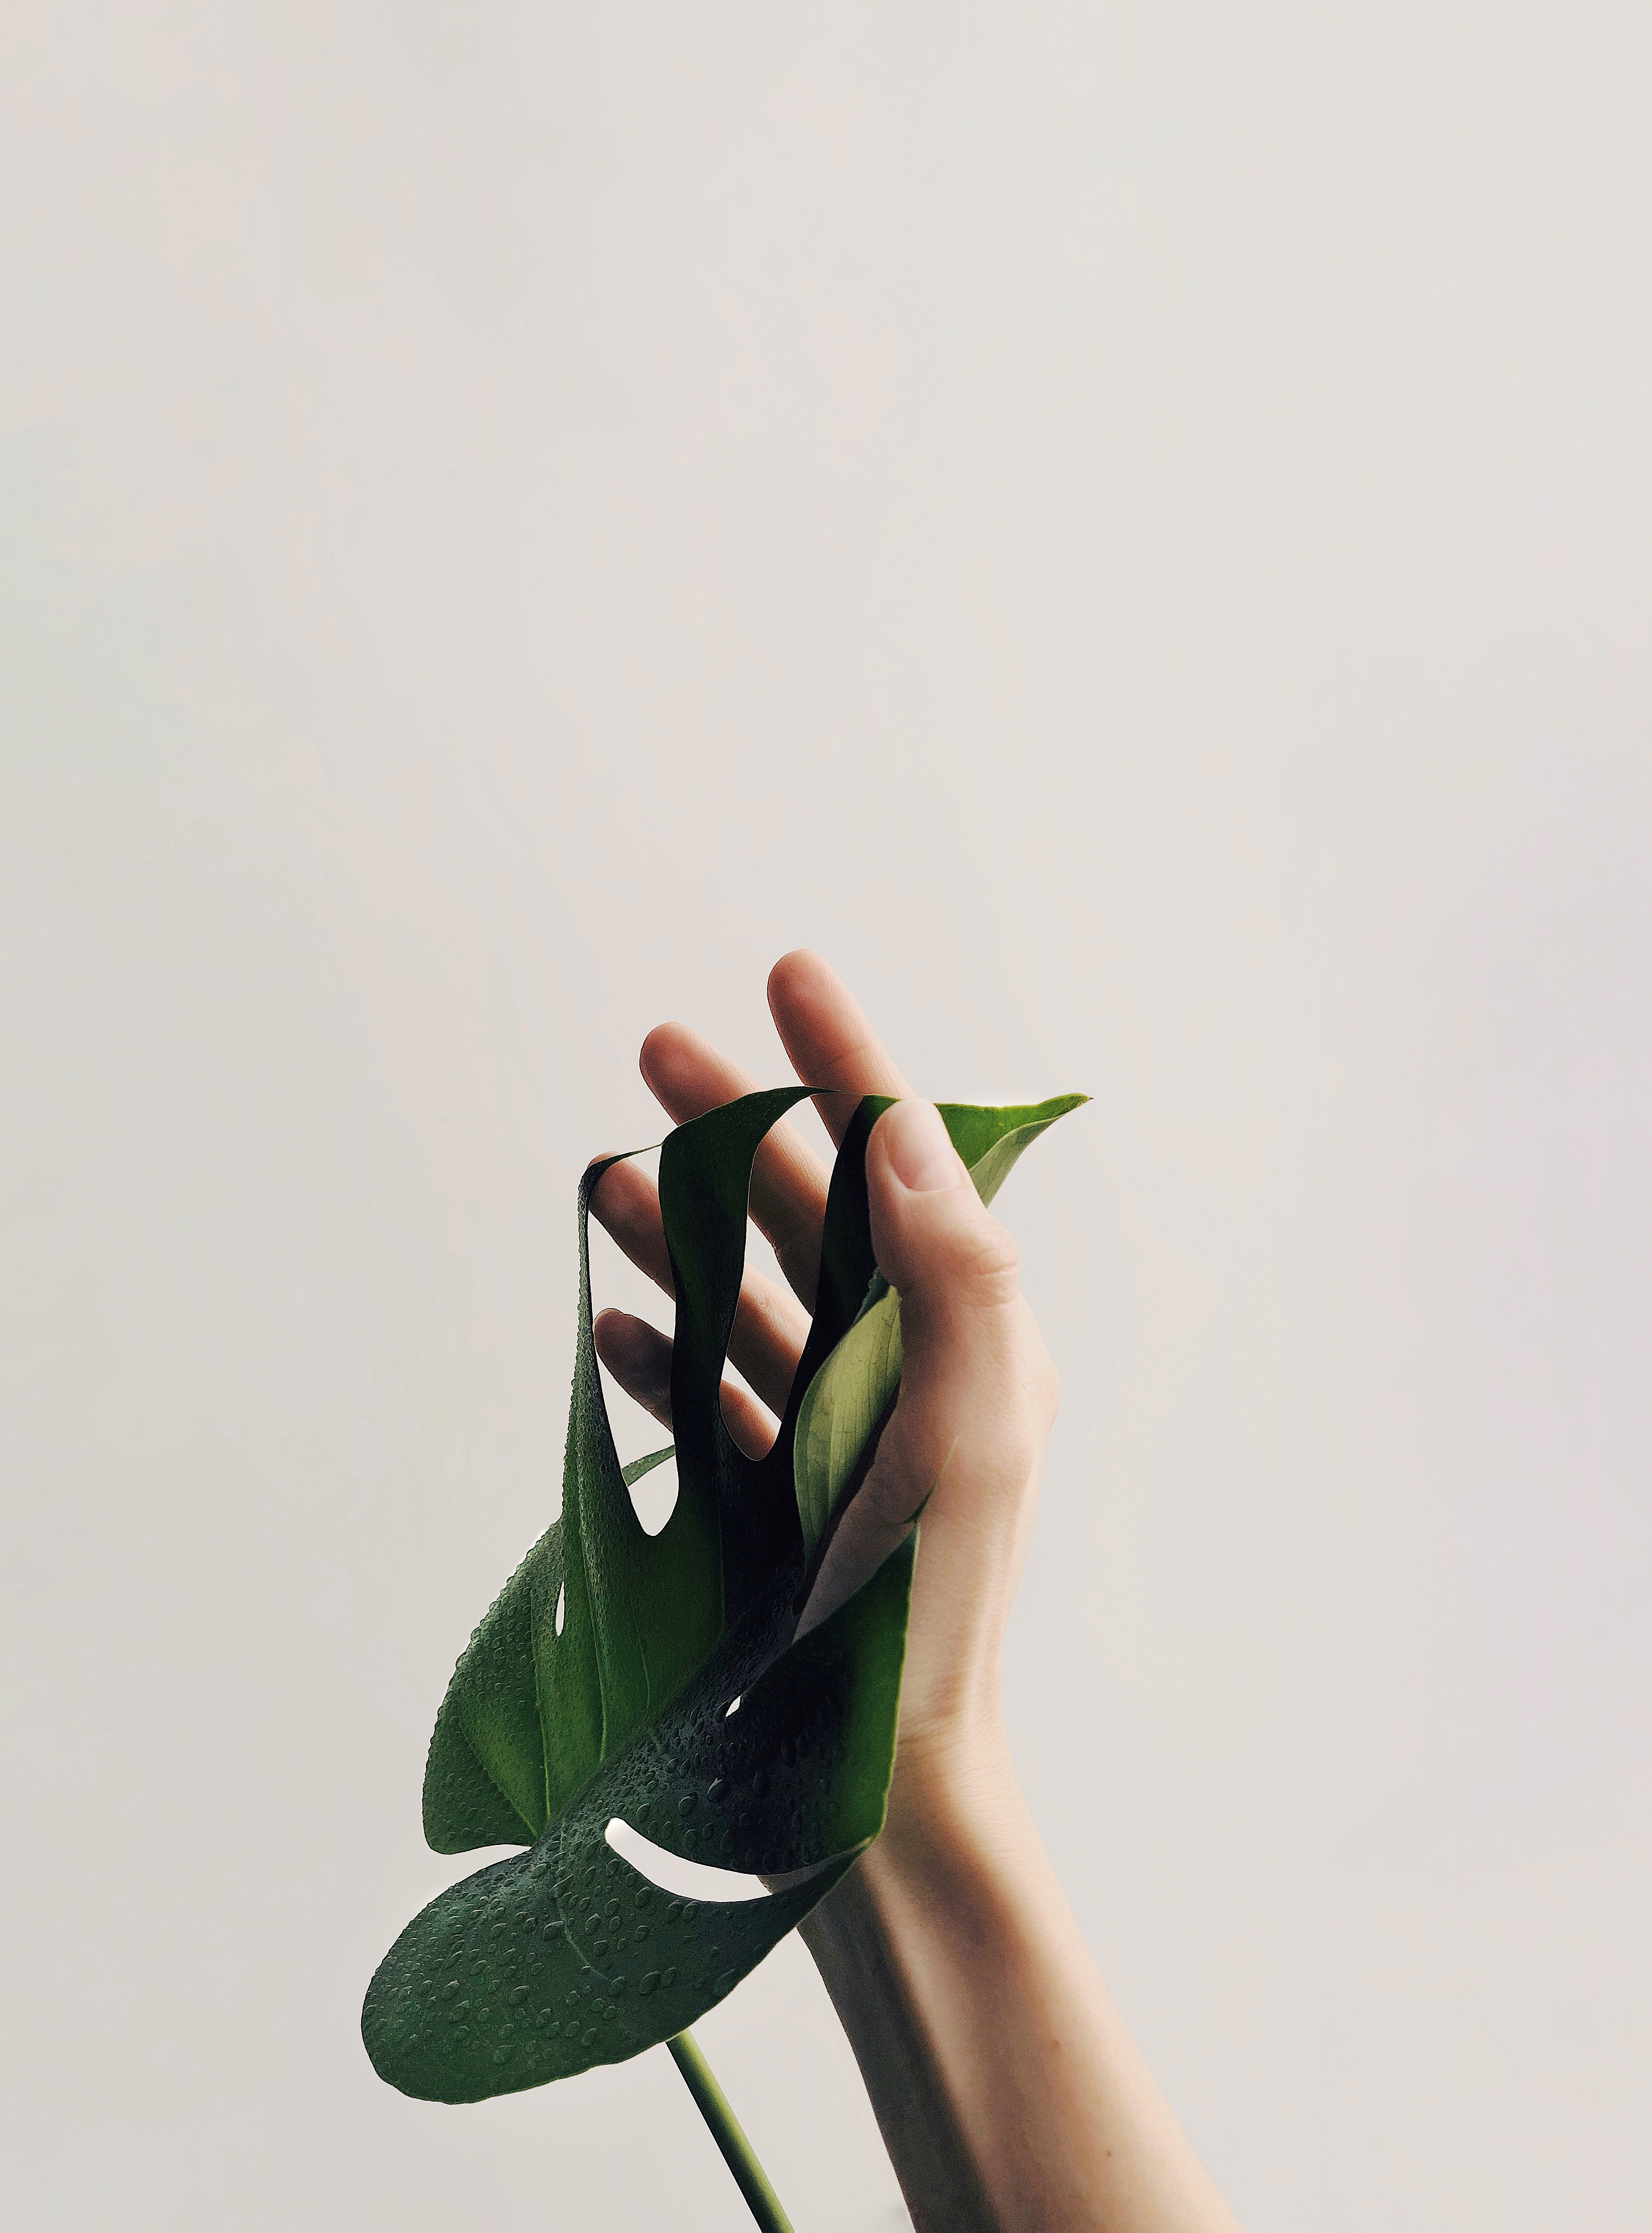 92961 Screensavers and Wallpapers Hand for phone. Download Minimalism, Hand, Sheet, Leaf, Plant, Drops pictures for free